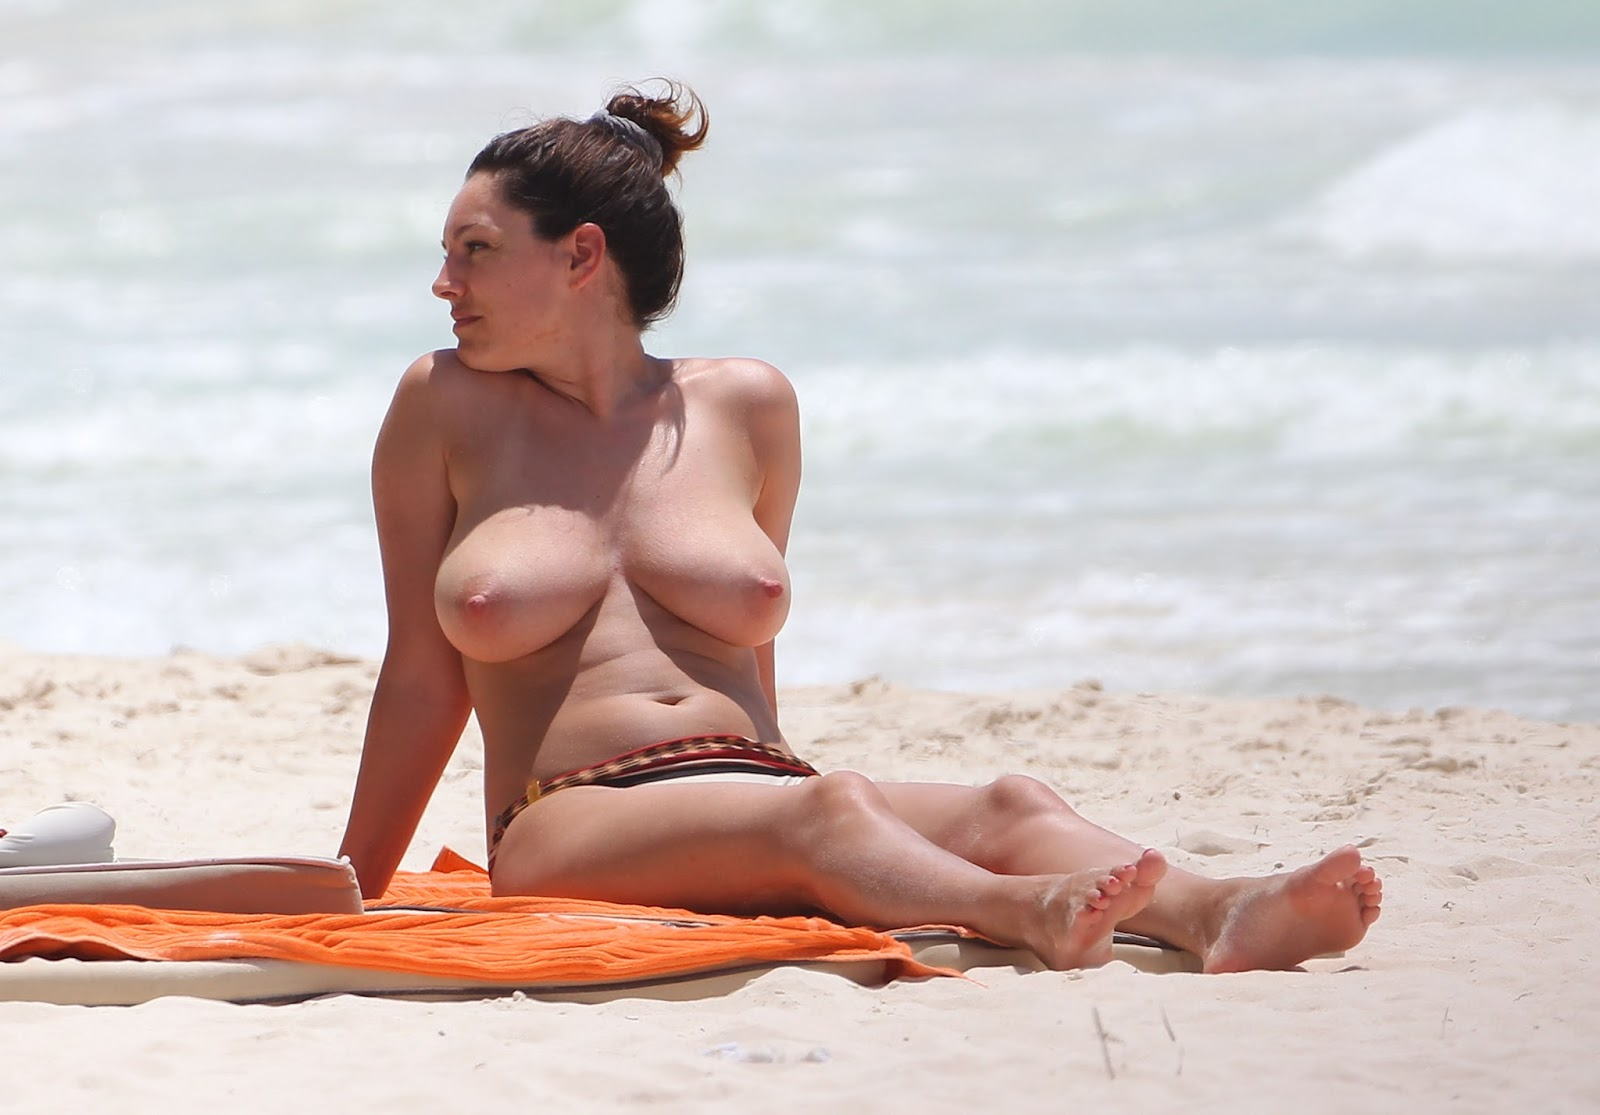 sexy beach exhibitionist warms naked vagina in the sun at nude beaches